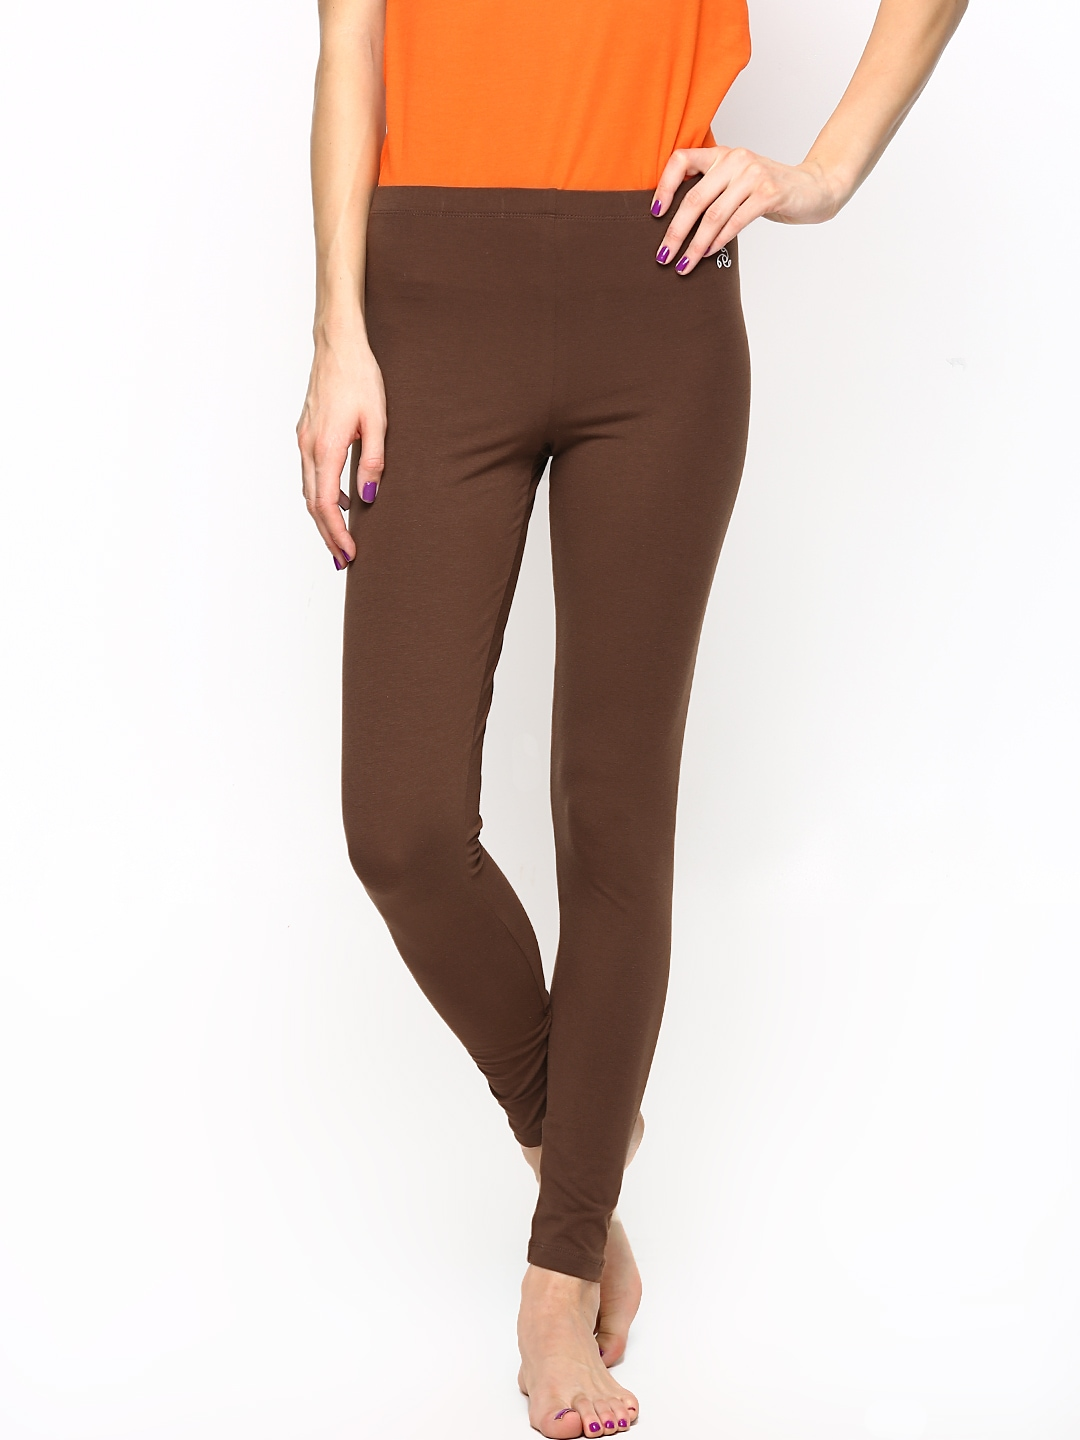 Free shipping BOTH ways on brown leggings, from our vast selection of styles. Fast delivery, and 24/7/ real-person service with a smile. Click or call